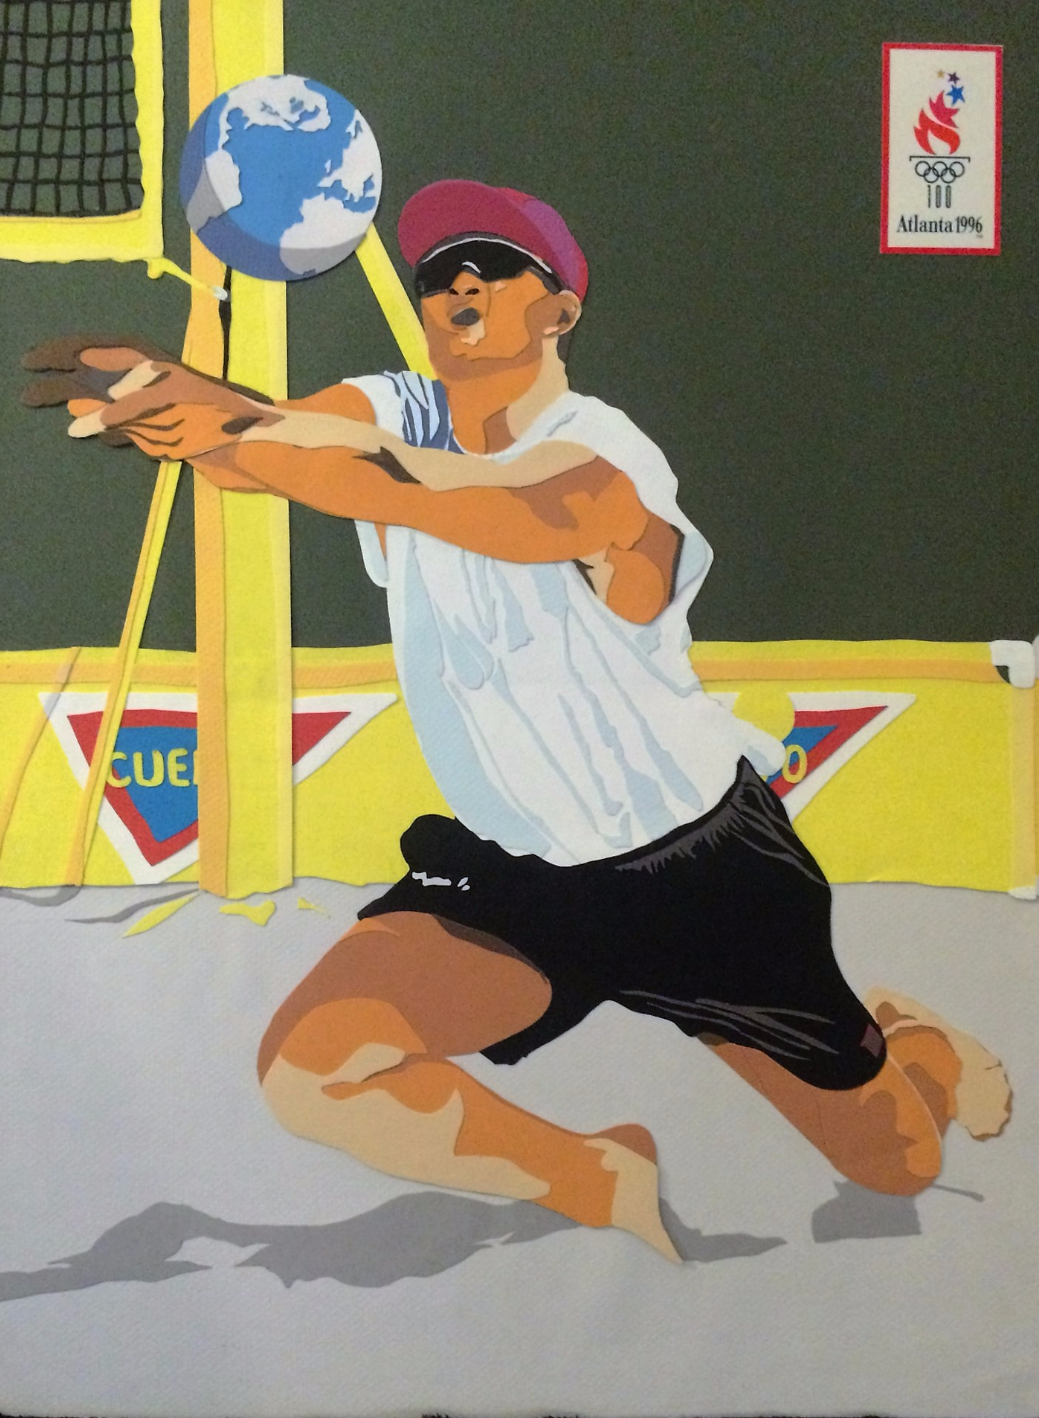 Atlanta Olympic Game Poster